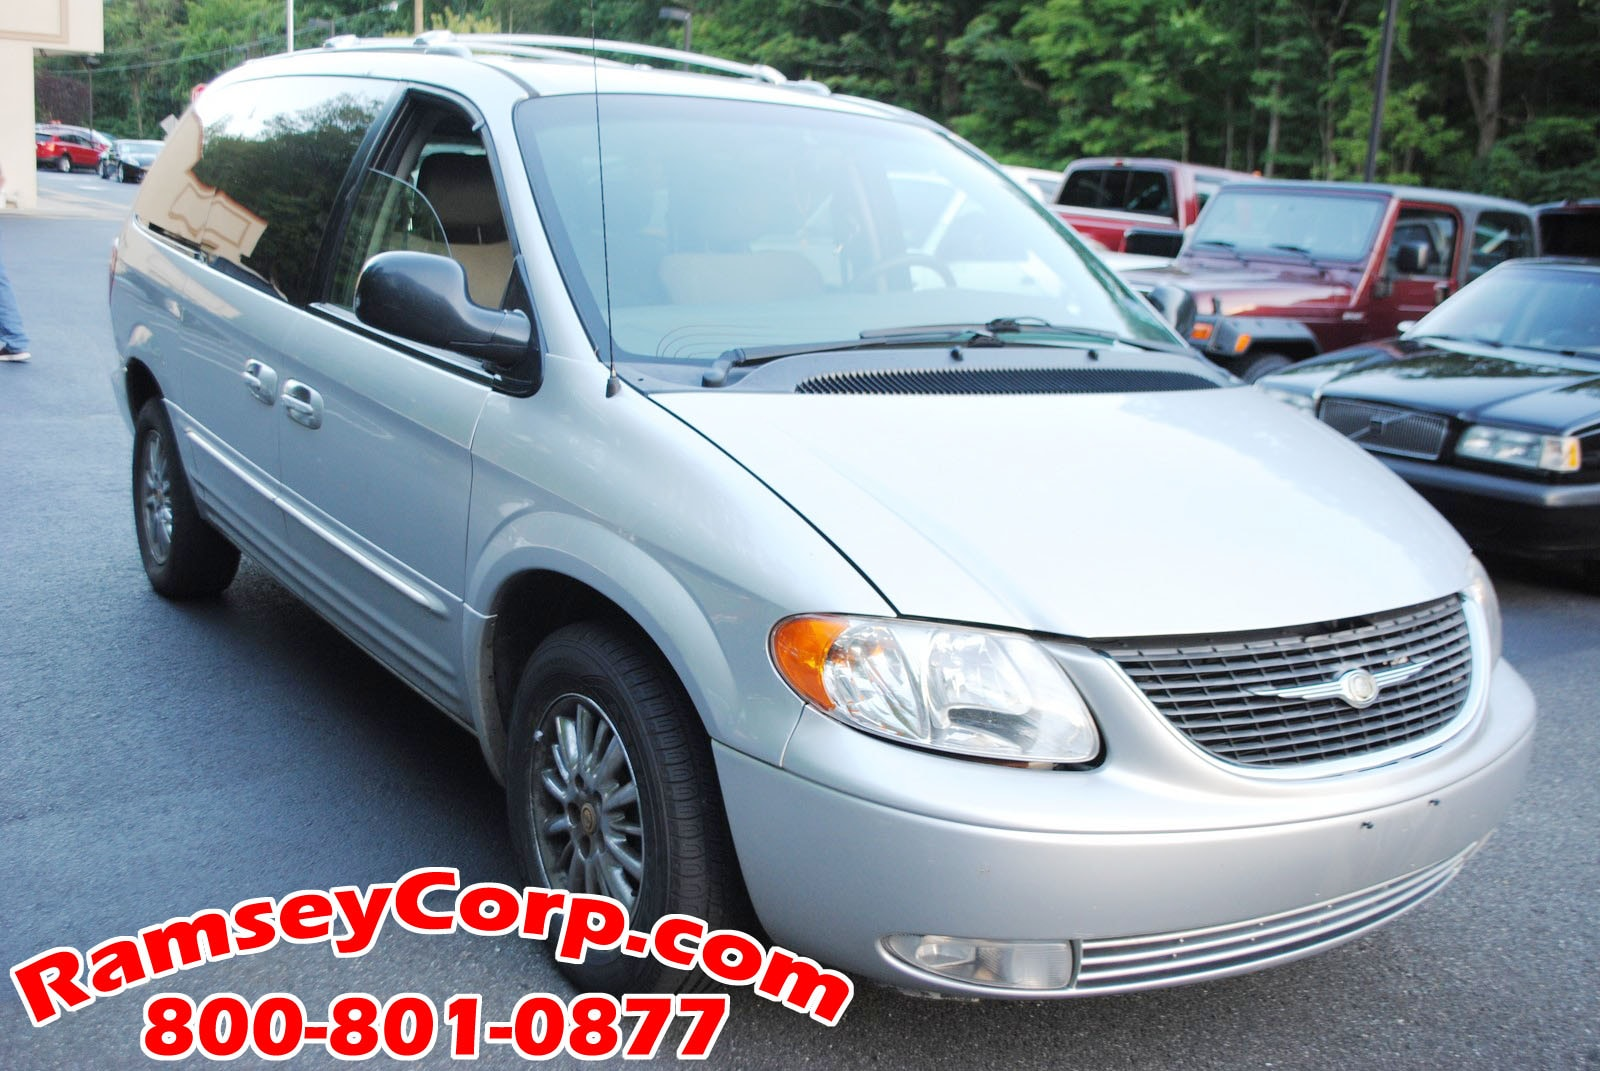 used 2002 chrysler town country for sale west milford nj. Black Bedroom Furniture Sets. Home Design Ideas